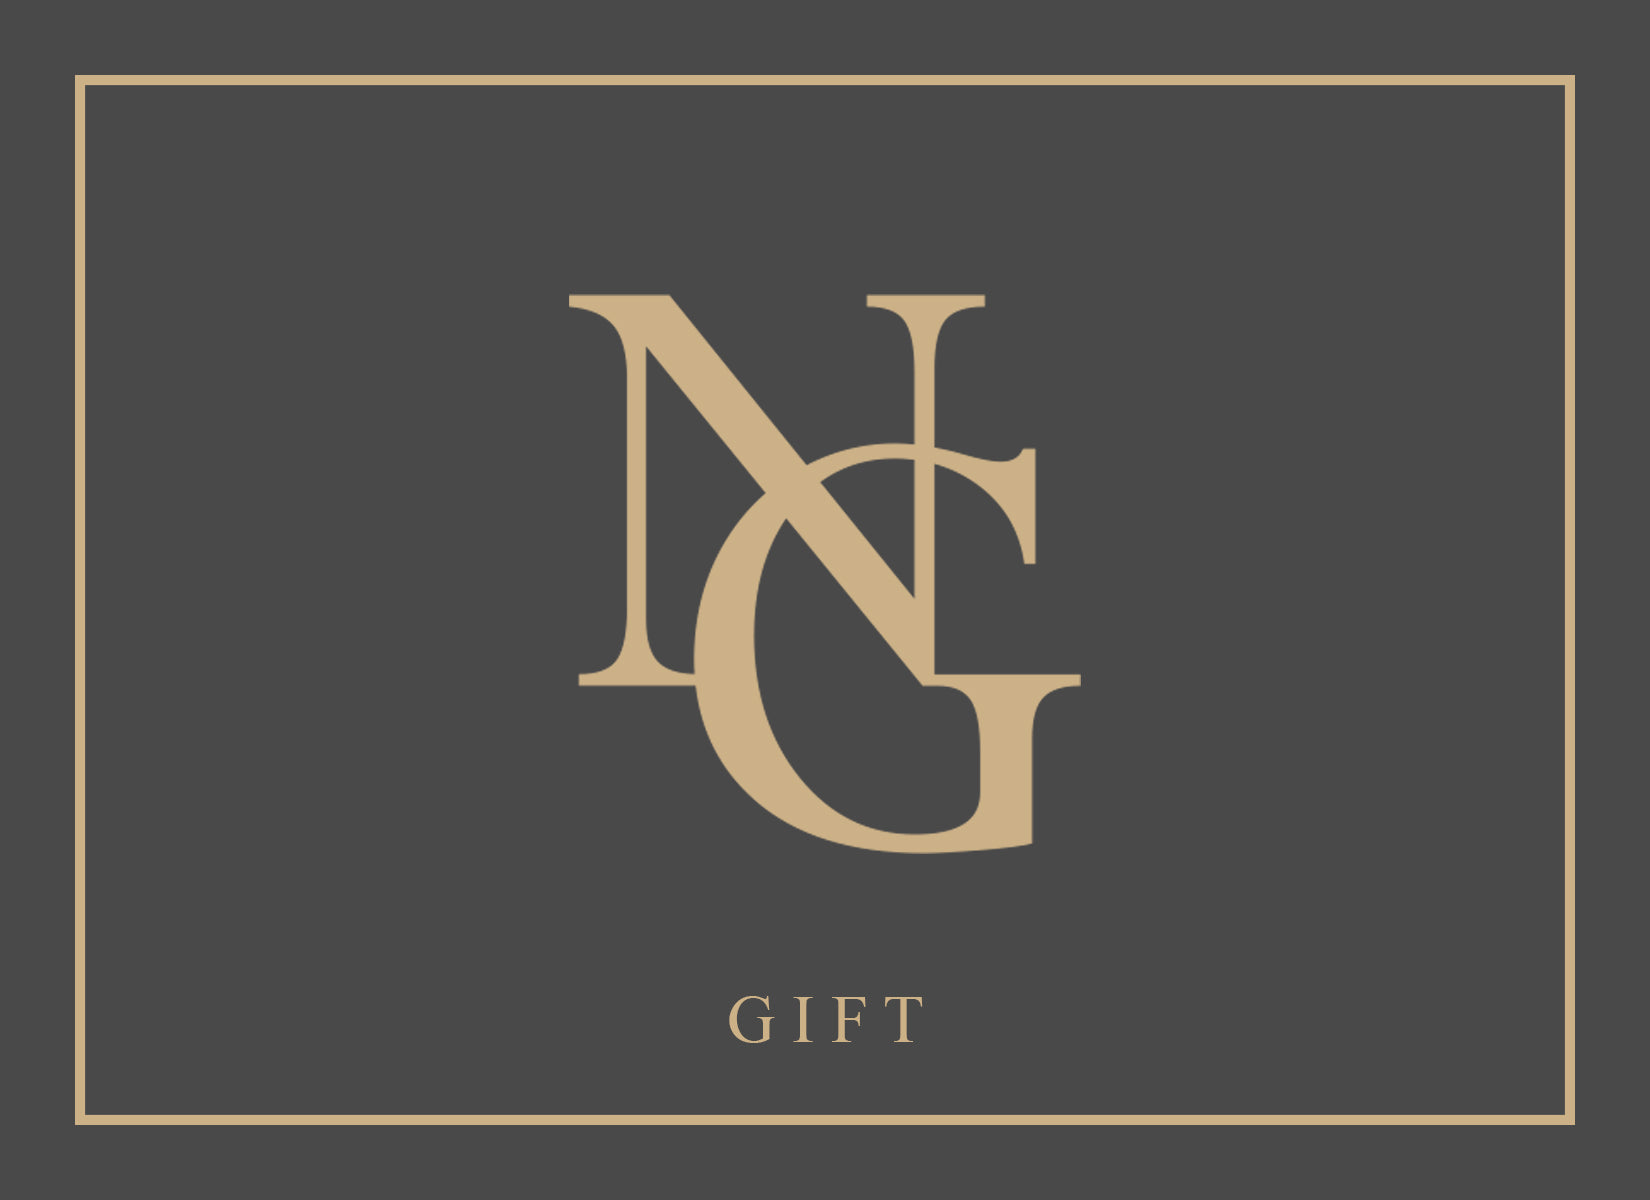 NORA GARDNER GIFT CARD WORKWEAR NYC